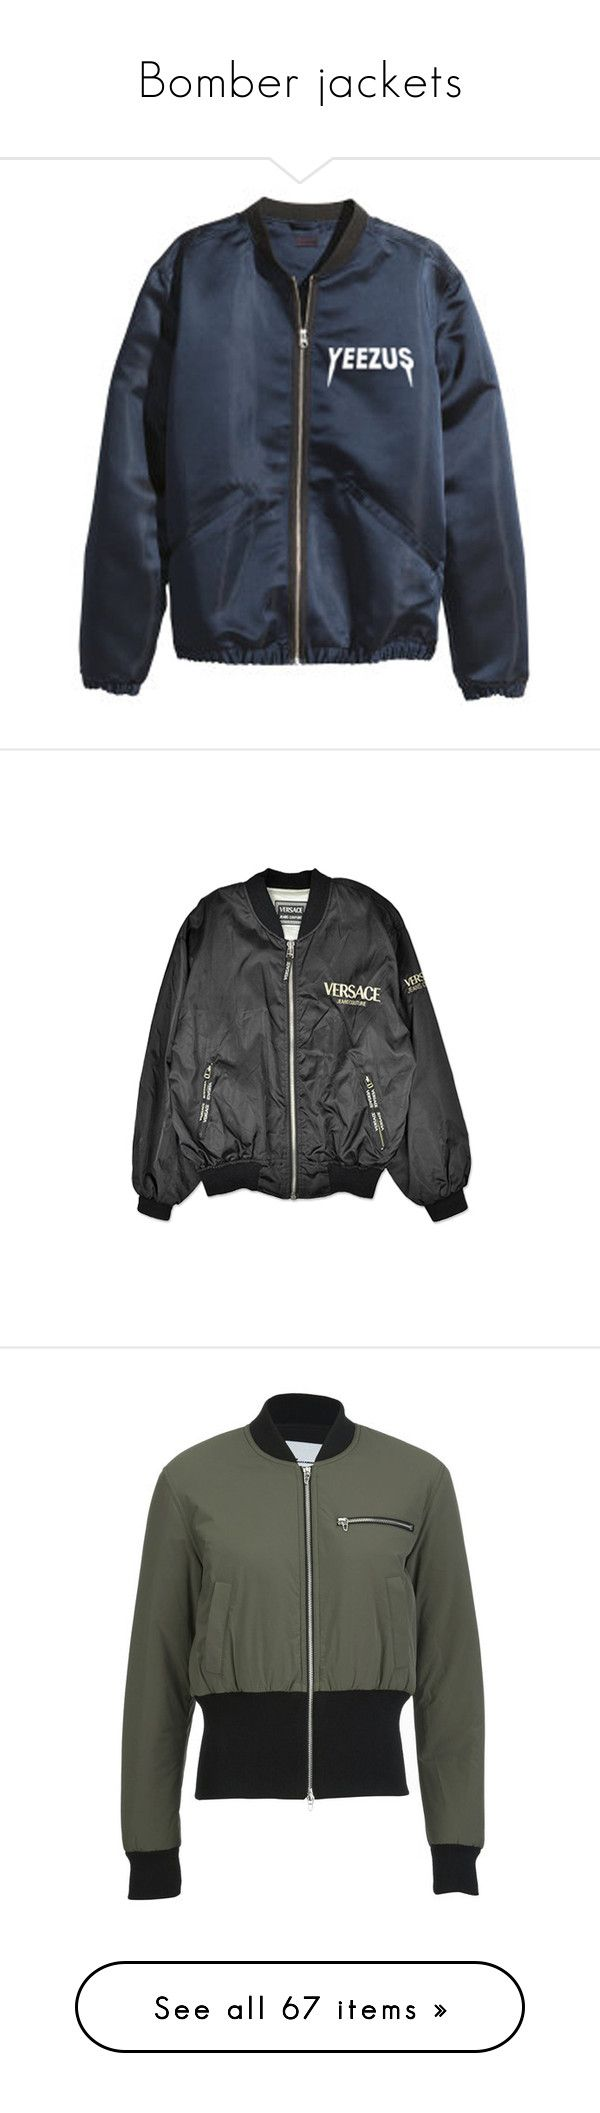 """""""Bomber jackets"""" by jazziearmstrong ❤ liked on Polyvore featuring outerwear, jackets, tops, coats, blue jackets, vintage coat, versace coats, versace, coats & jackets and flight jacket"""